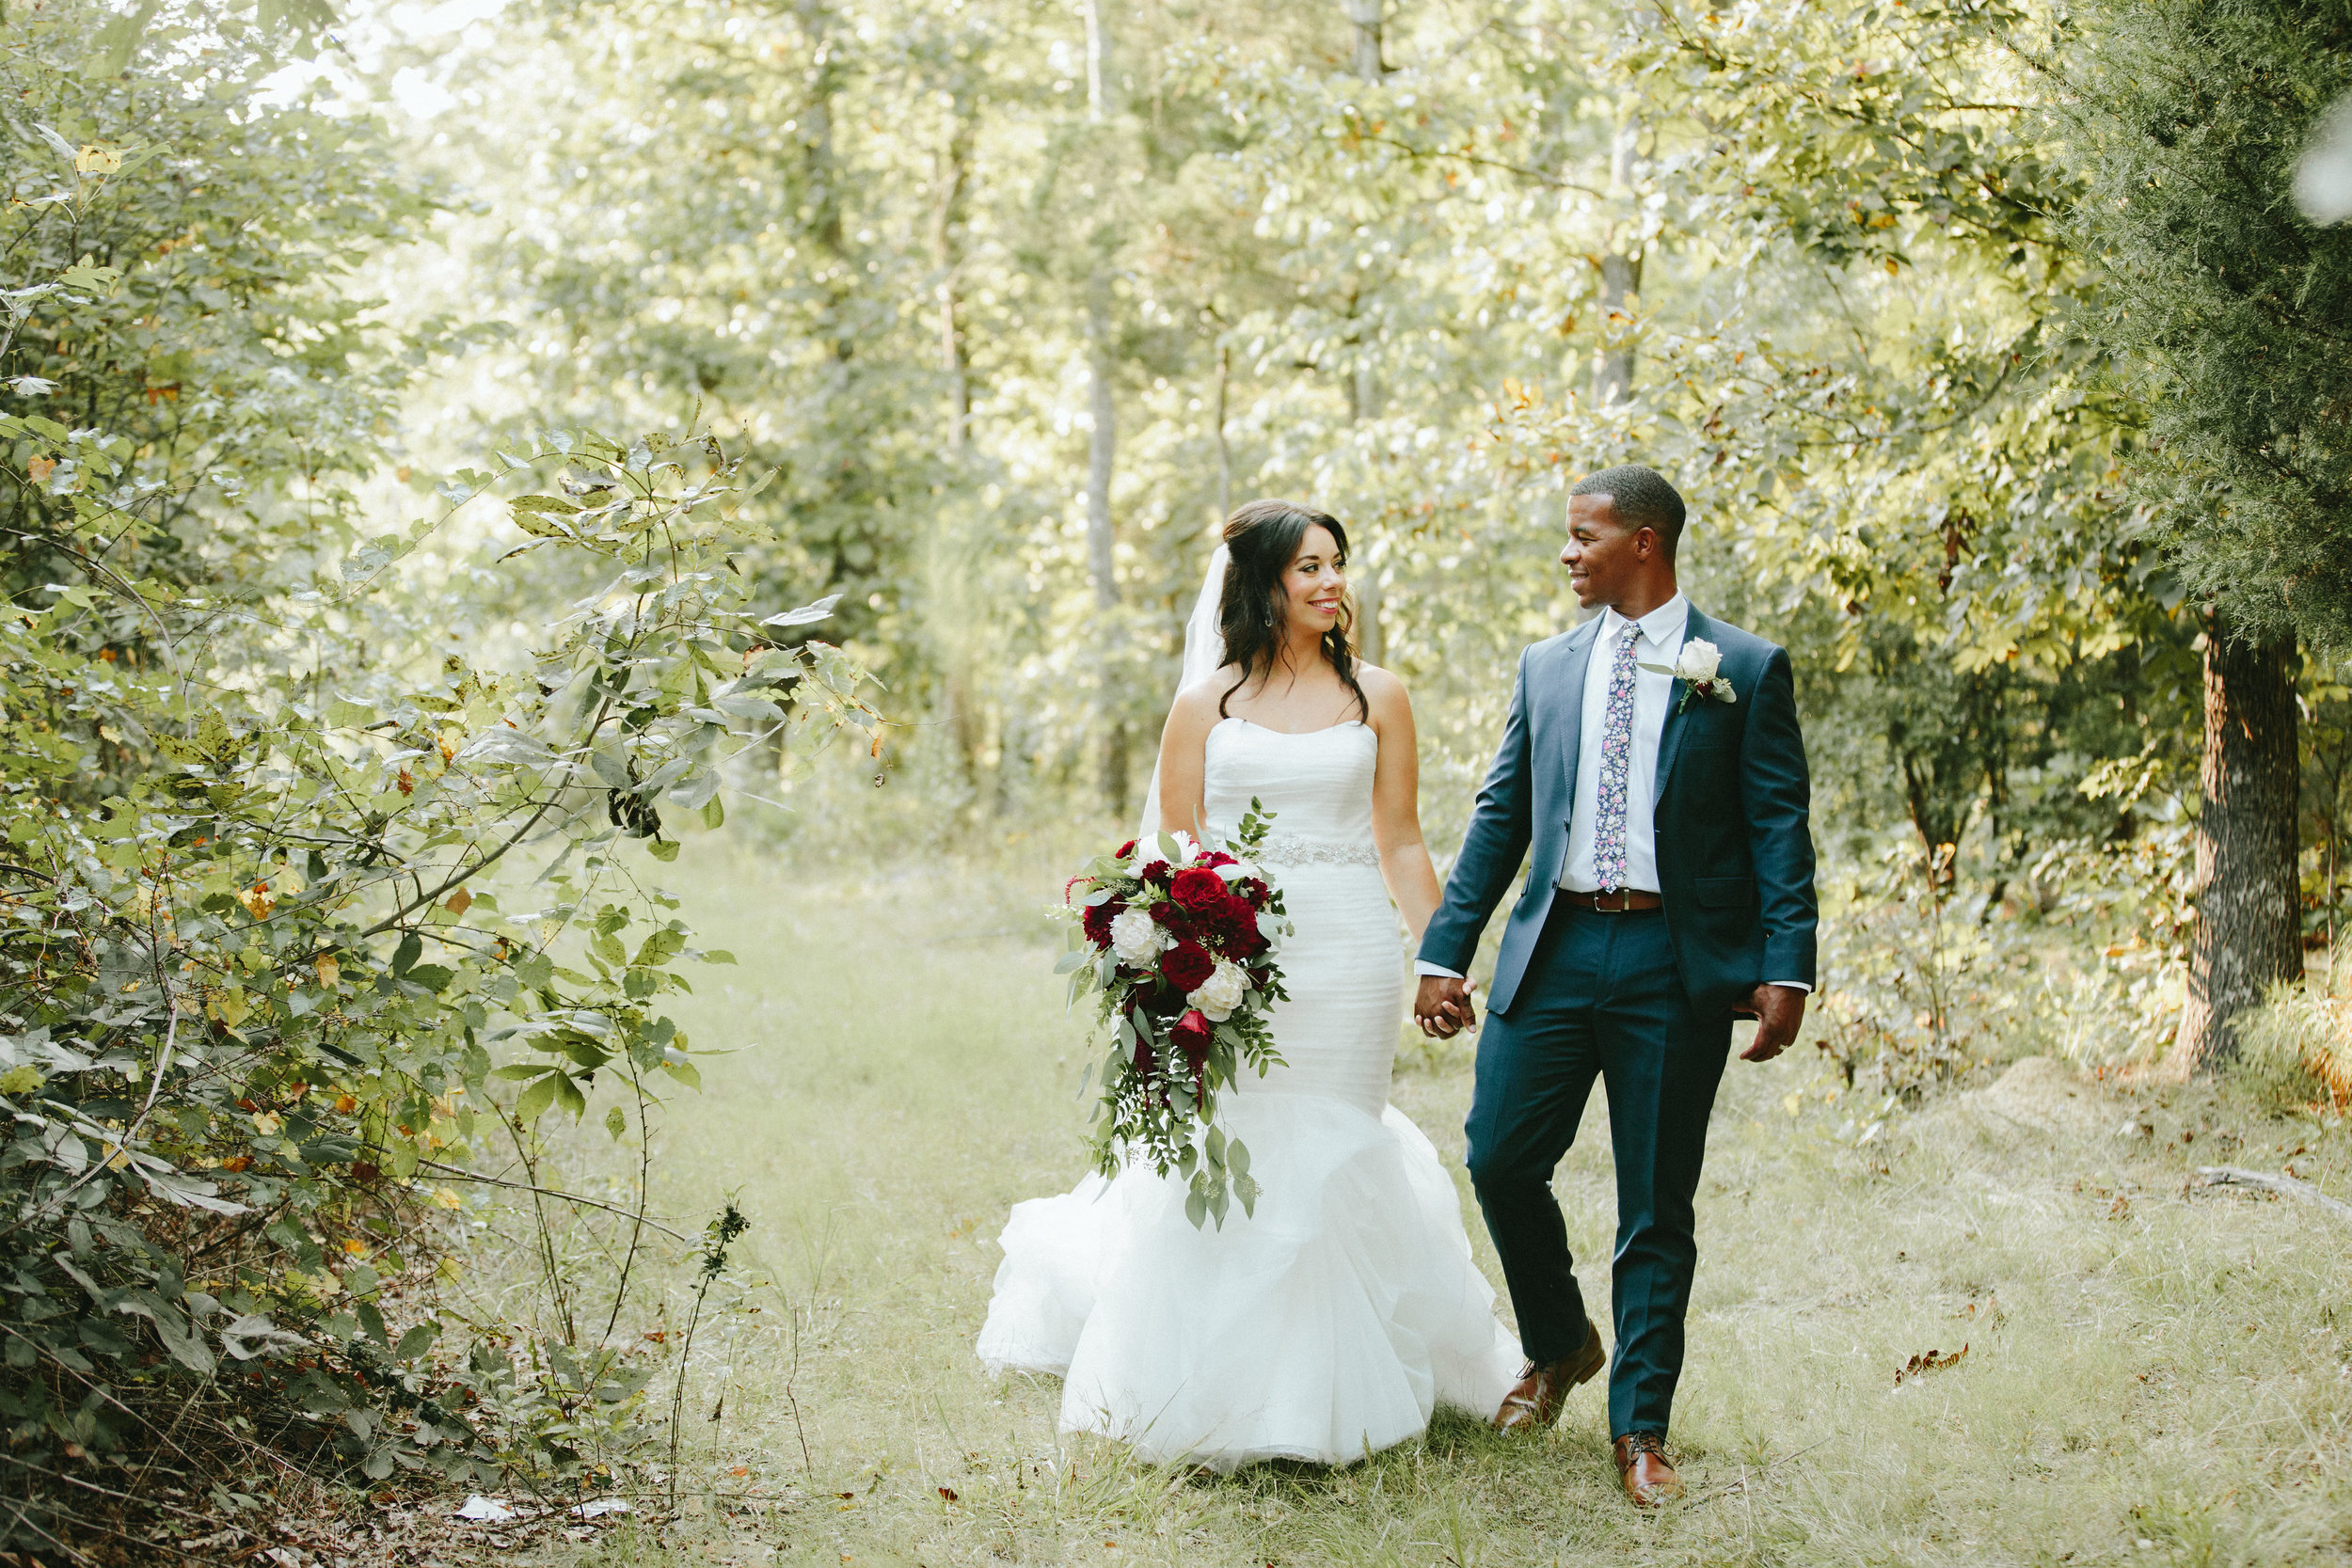 Late Summer Wedding - Classic & Elegant